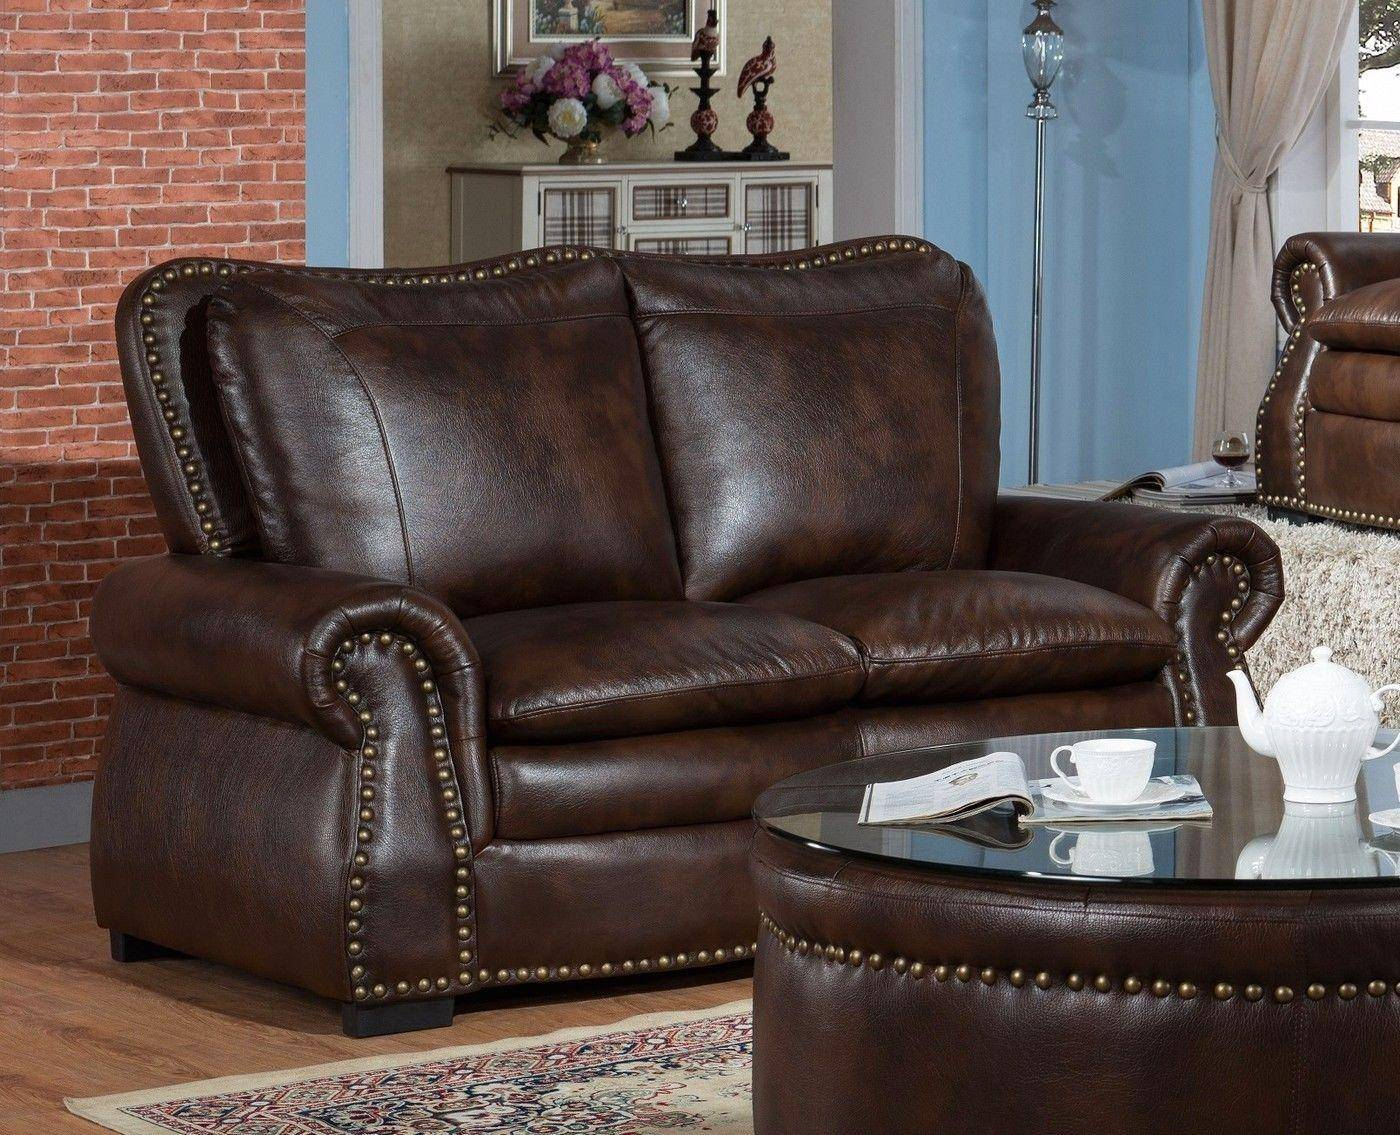 McFerran SF5507 Brown Premium Leather Air Fabric Sofa ...